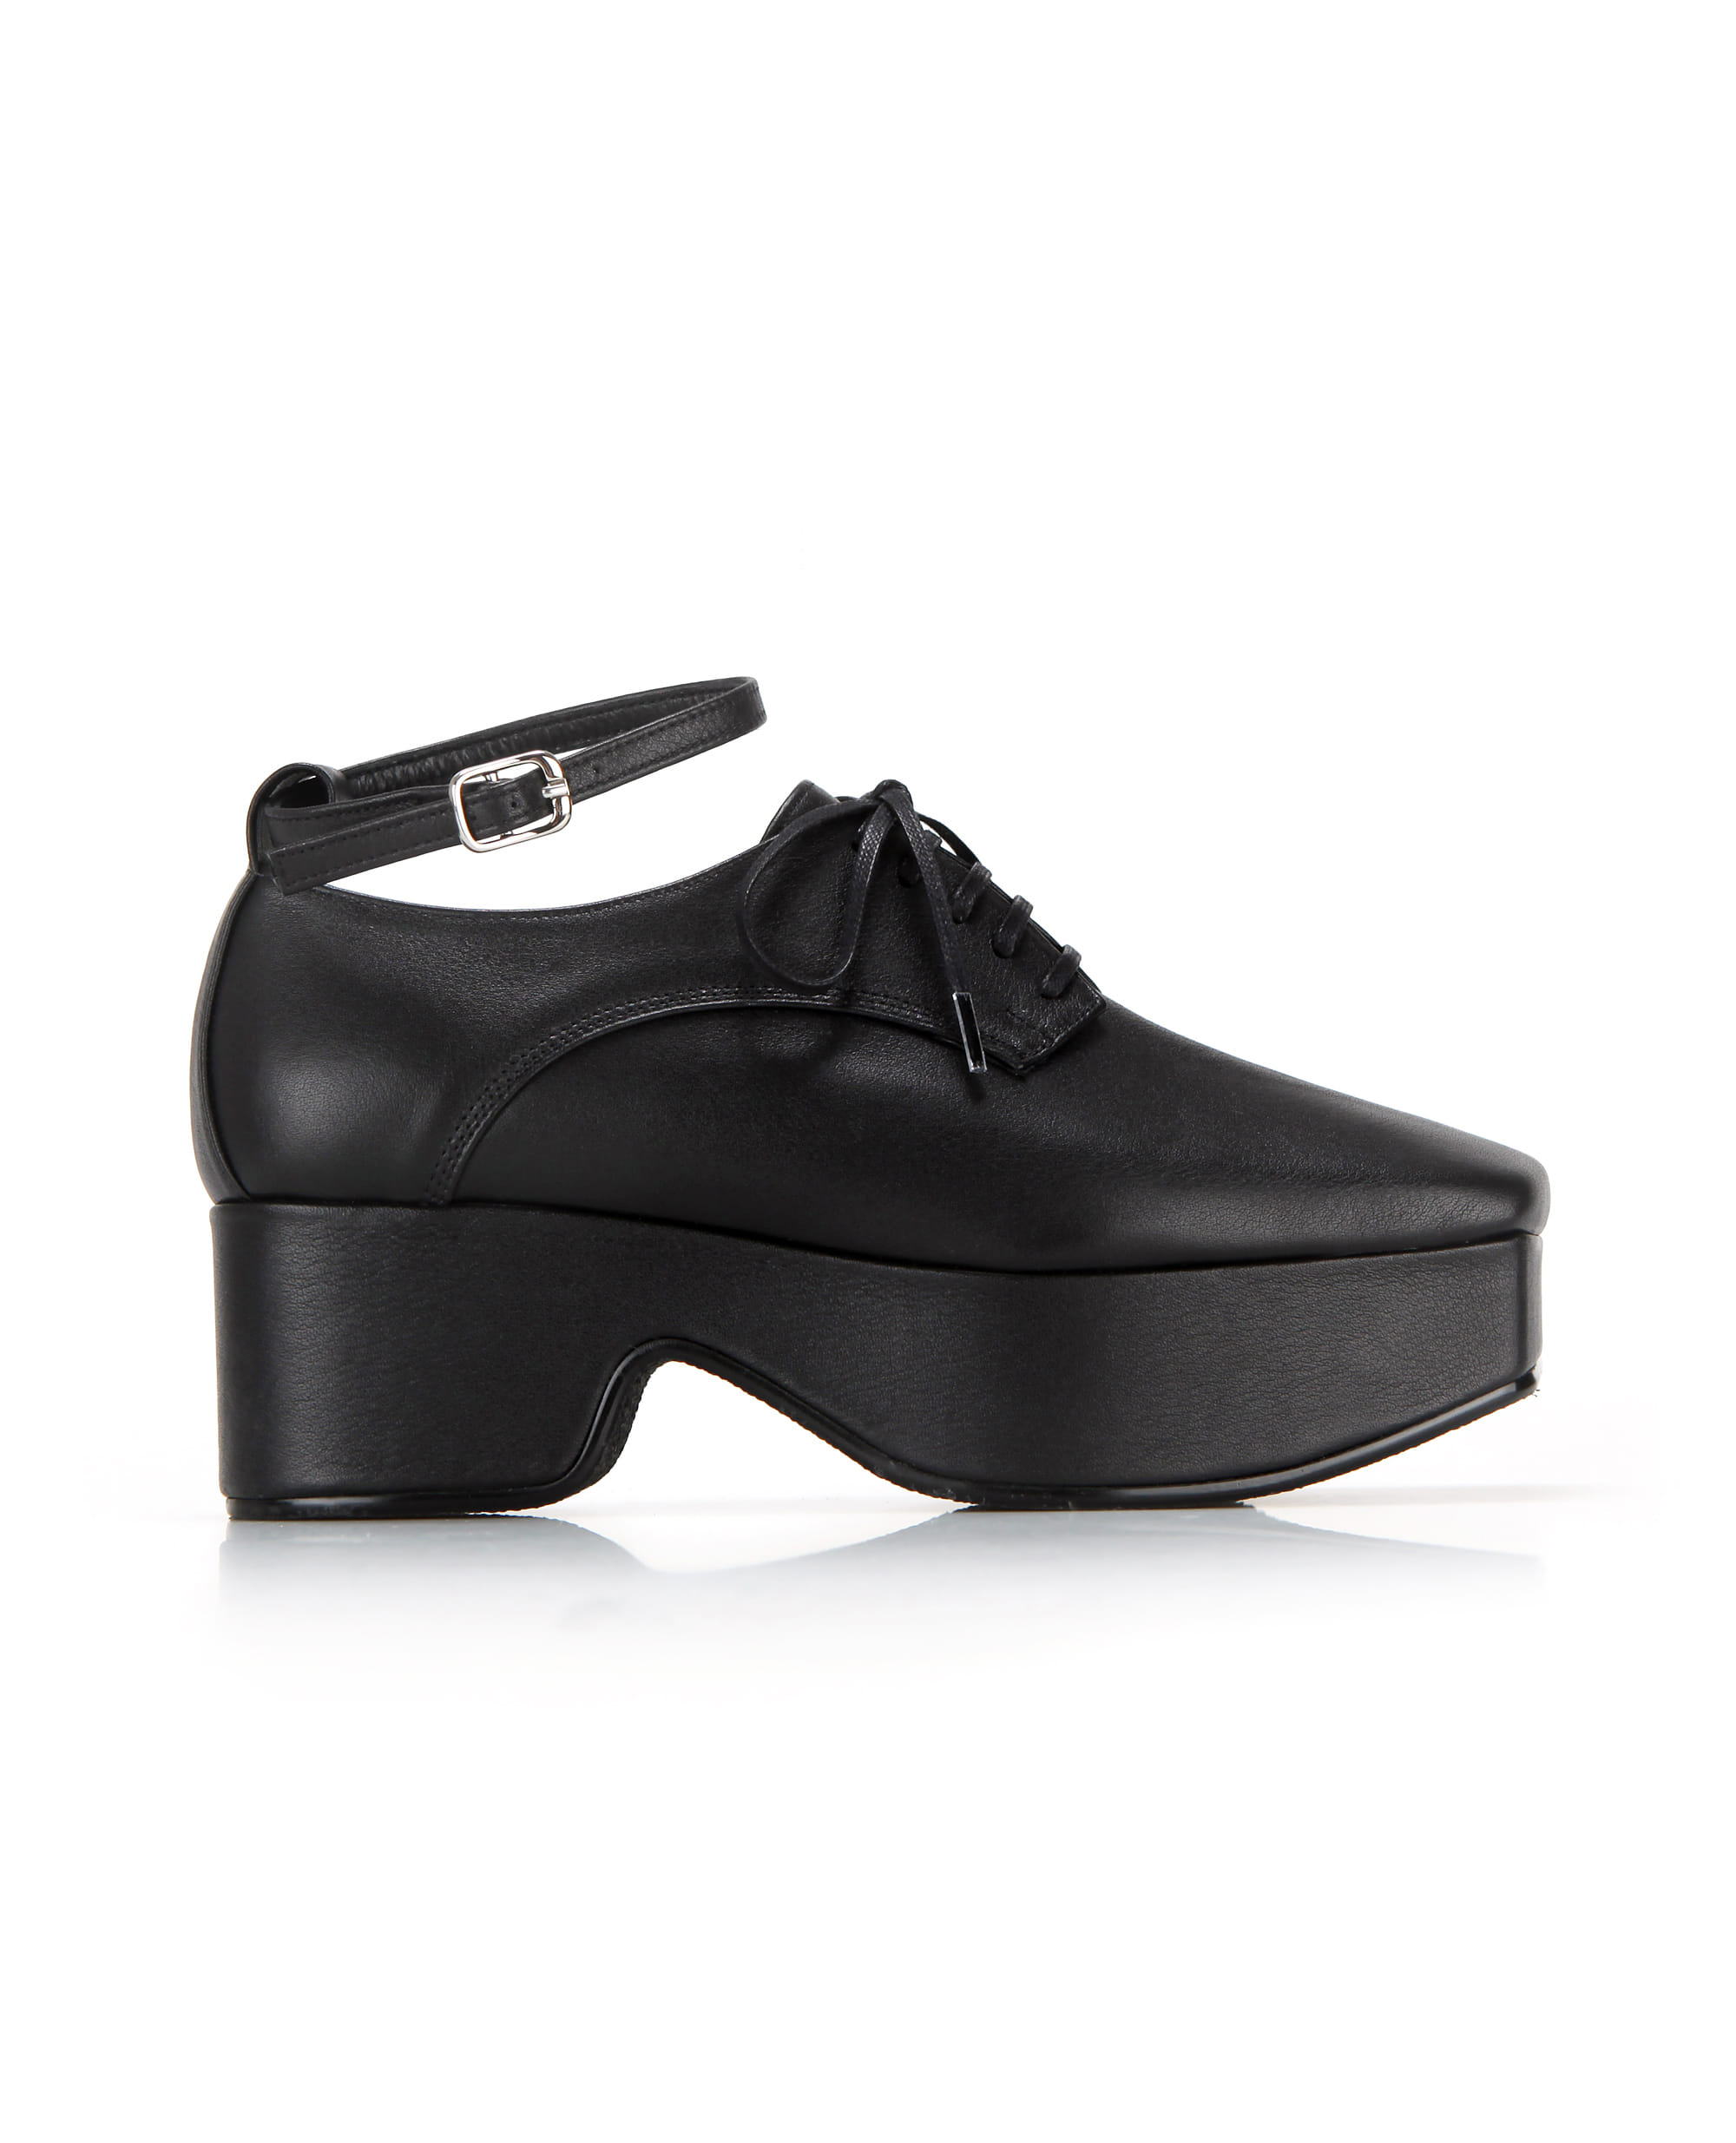 Squared toe derby platforms (+ball chain) | Black